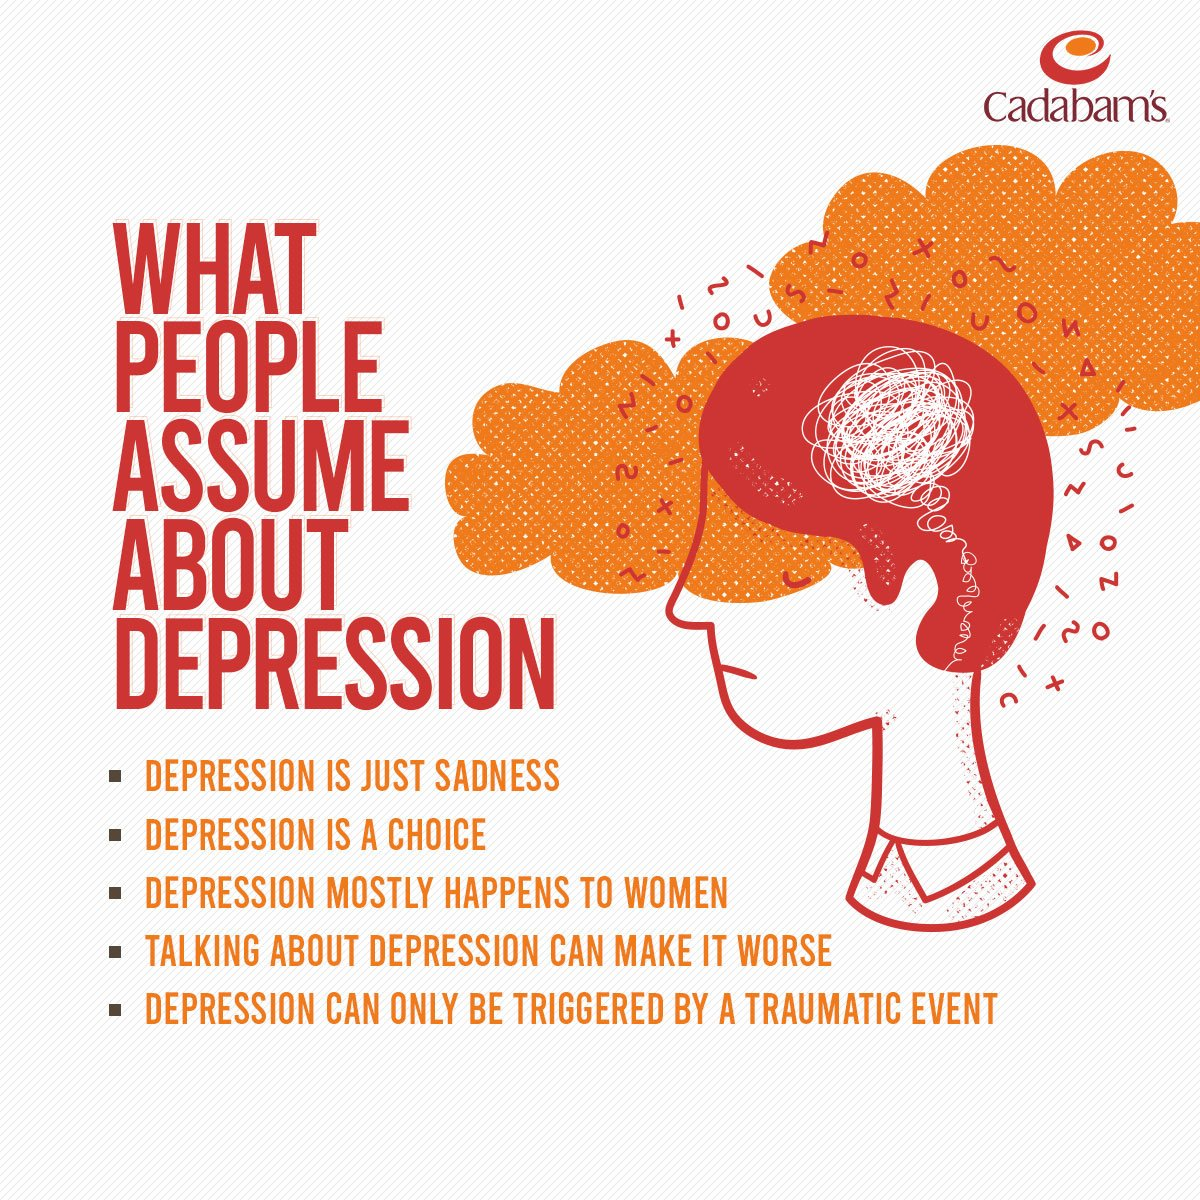 Are you tired of hearing them too?😞  One in 20 Indians suffer from some form of depression; educating ourselves is the first step in working towards a solution. #depression #depressionhelp #depressionawareness #mentalhealthcounseling #mentalhealth #mentalhealthadvocacy